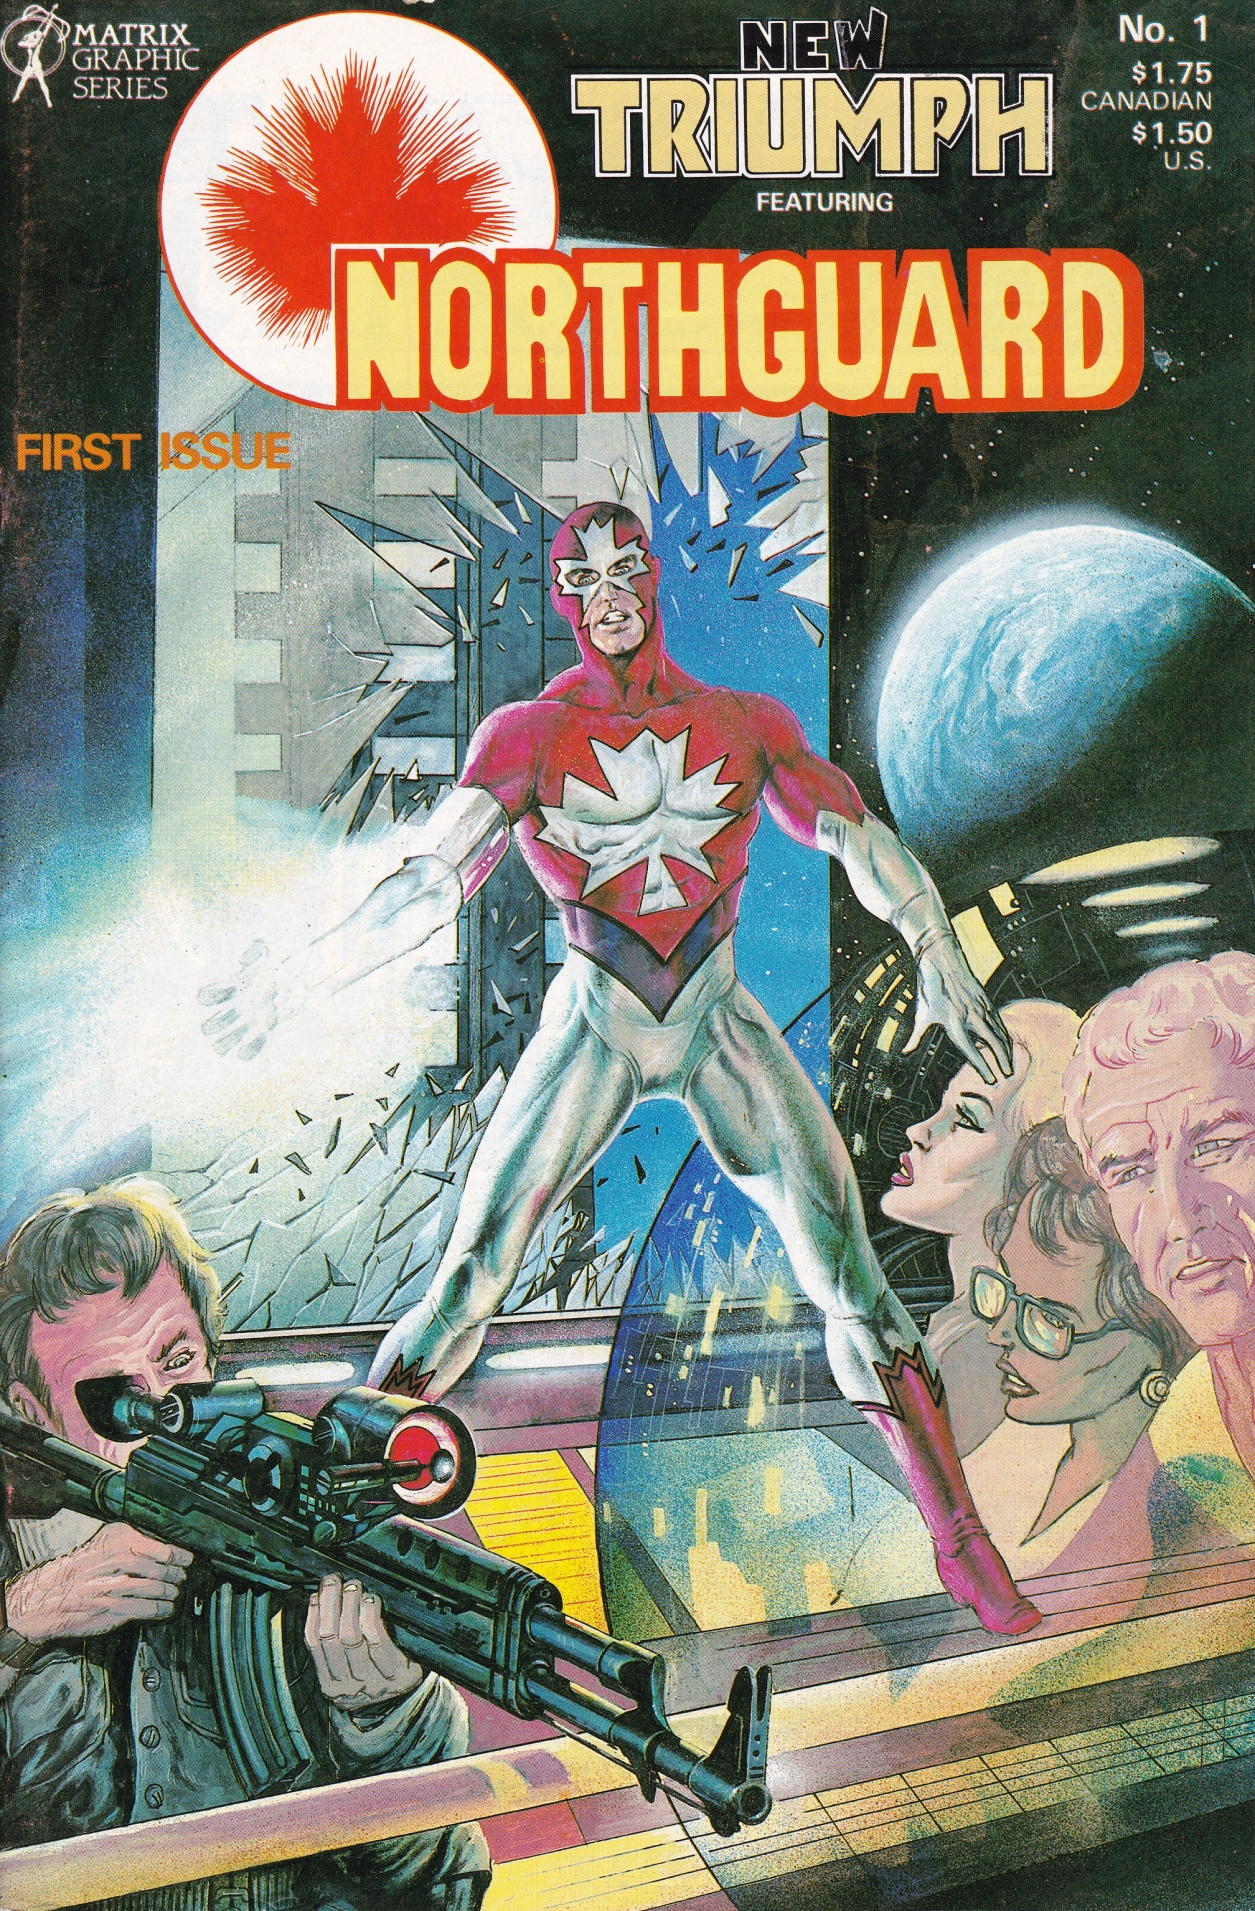 C:\Users\Robert\Documents\CARTOONING ILLUSTRATION ANIMATION\IMAGE COMIC BOOK COVERS\NORTHGUARD, 1.jpg